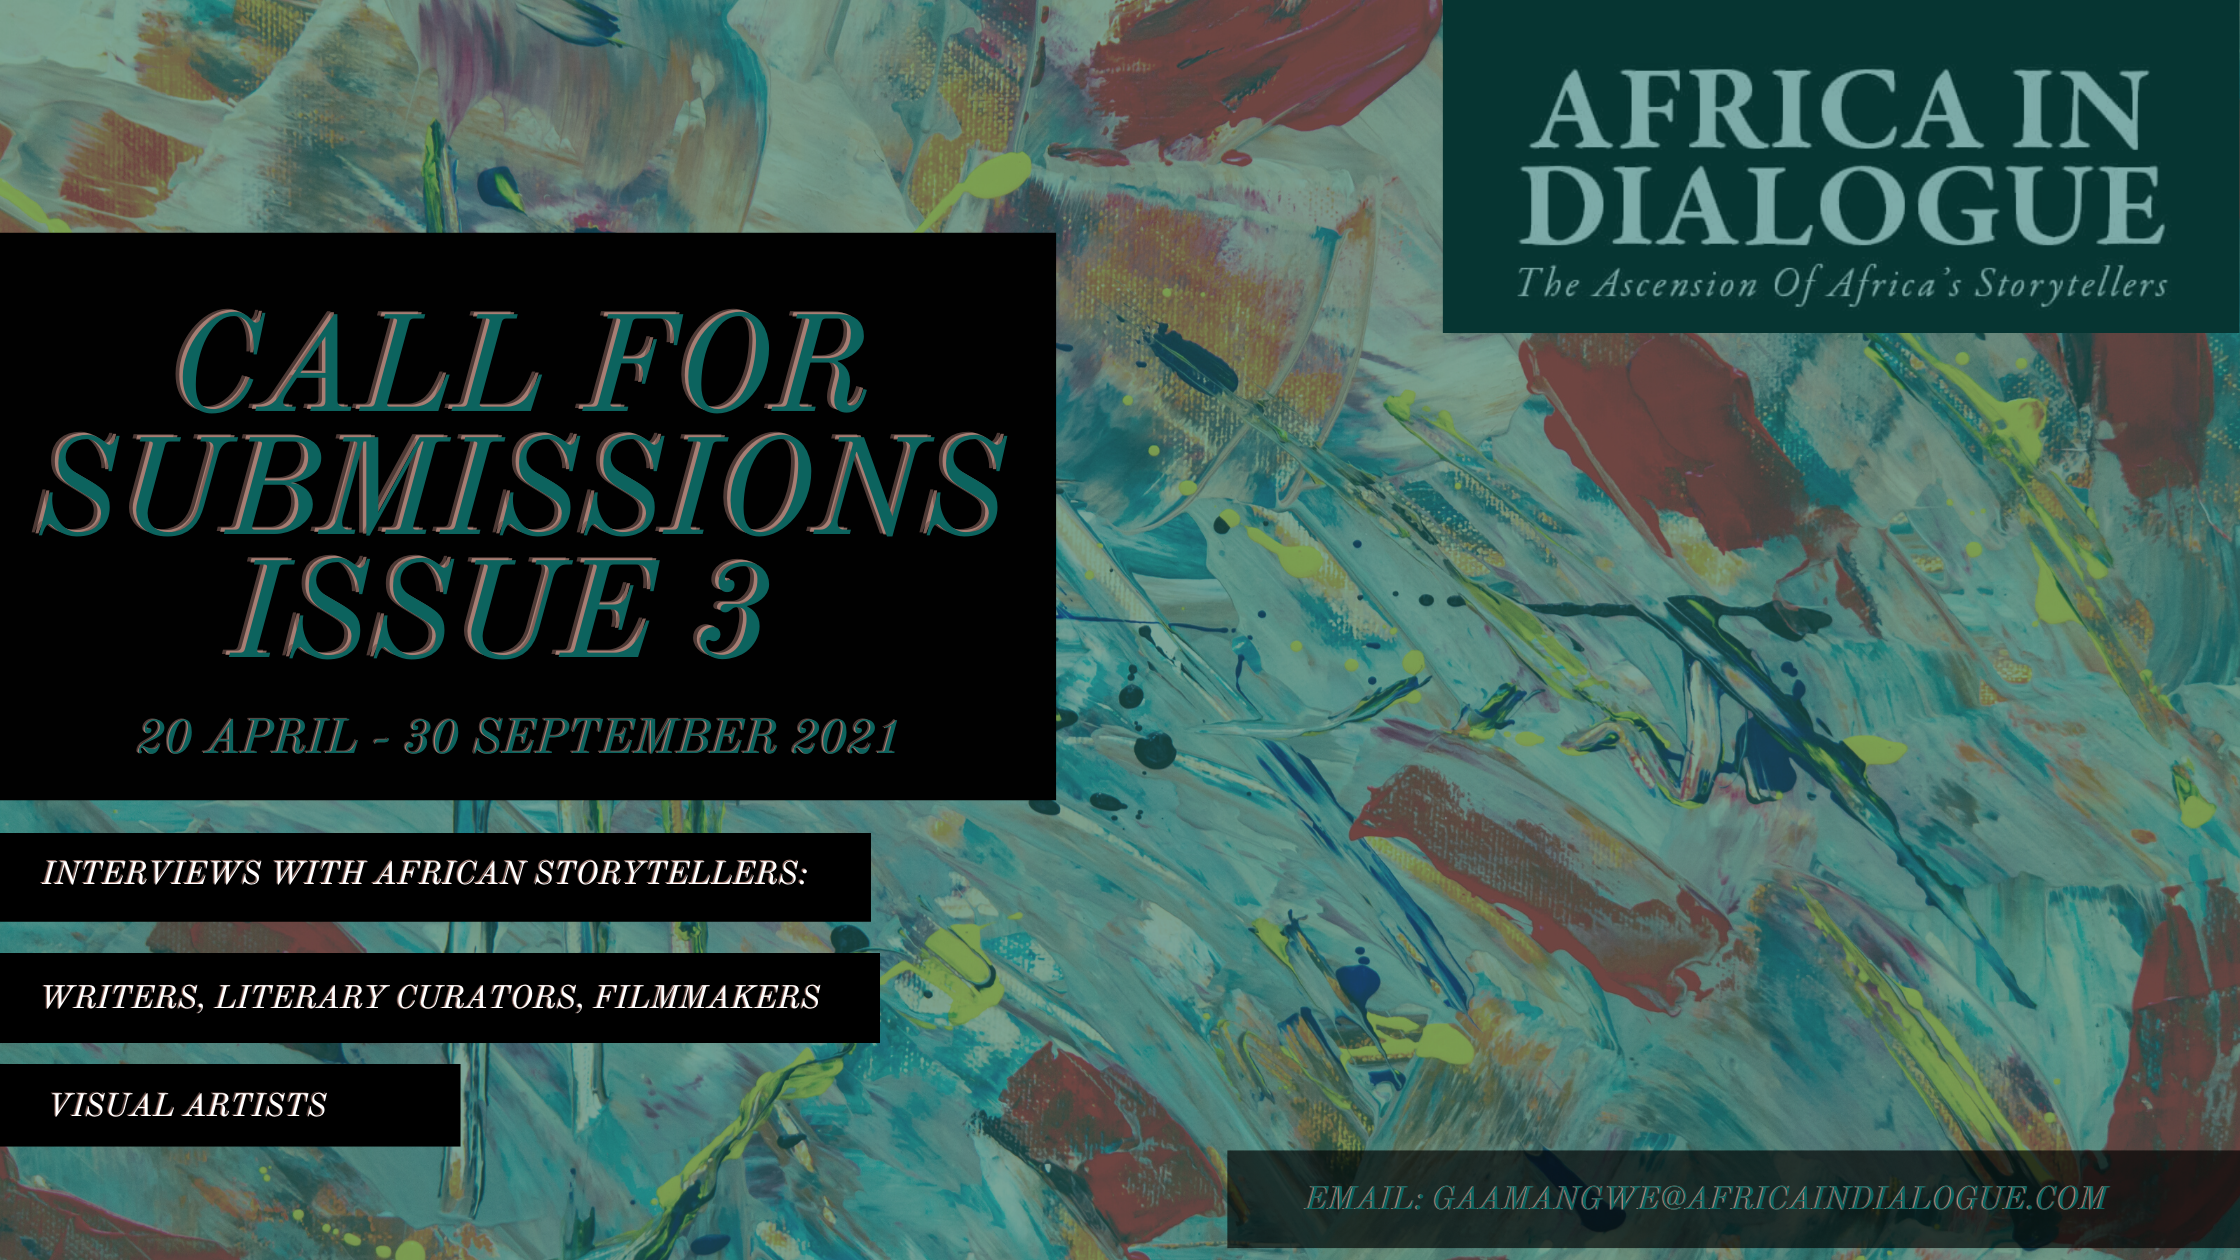 Call for Submissions Issue 3